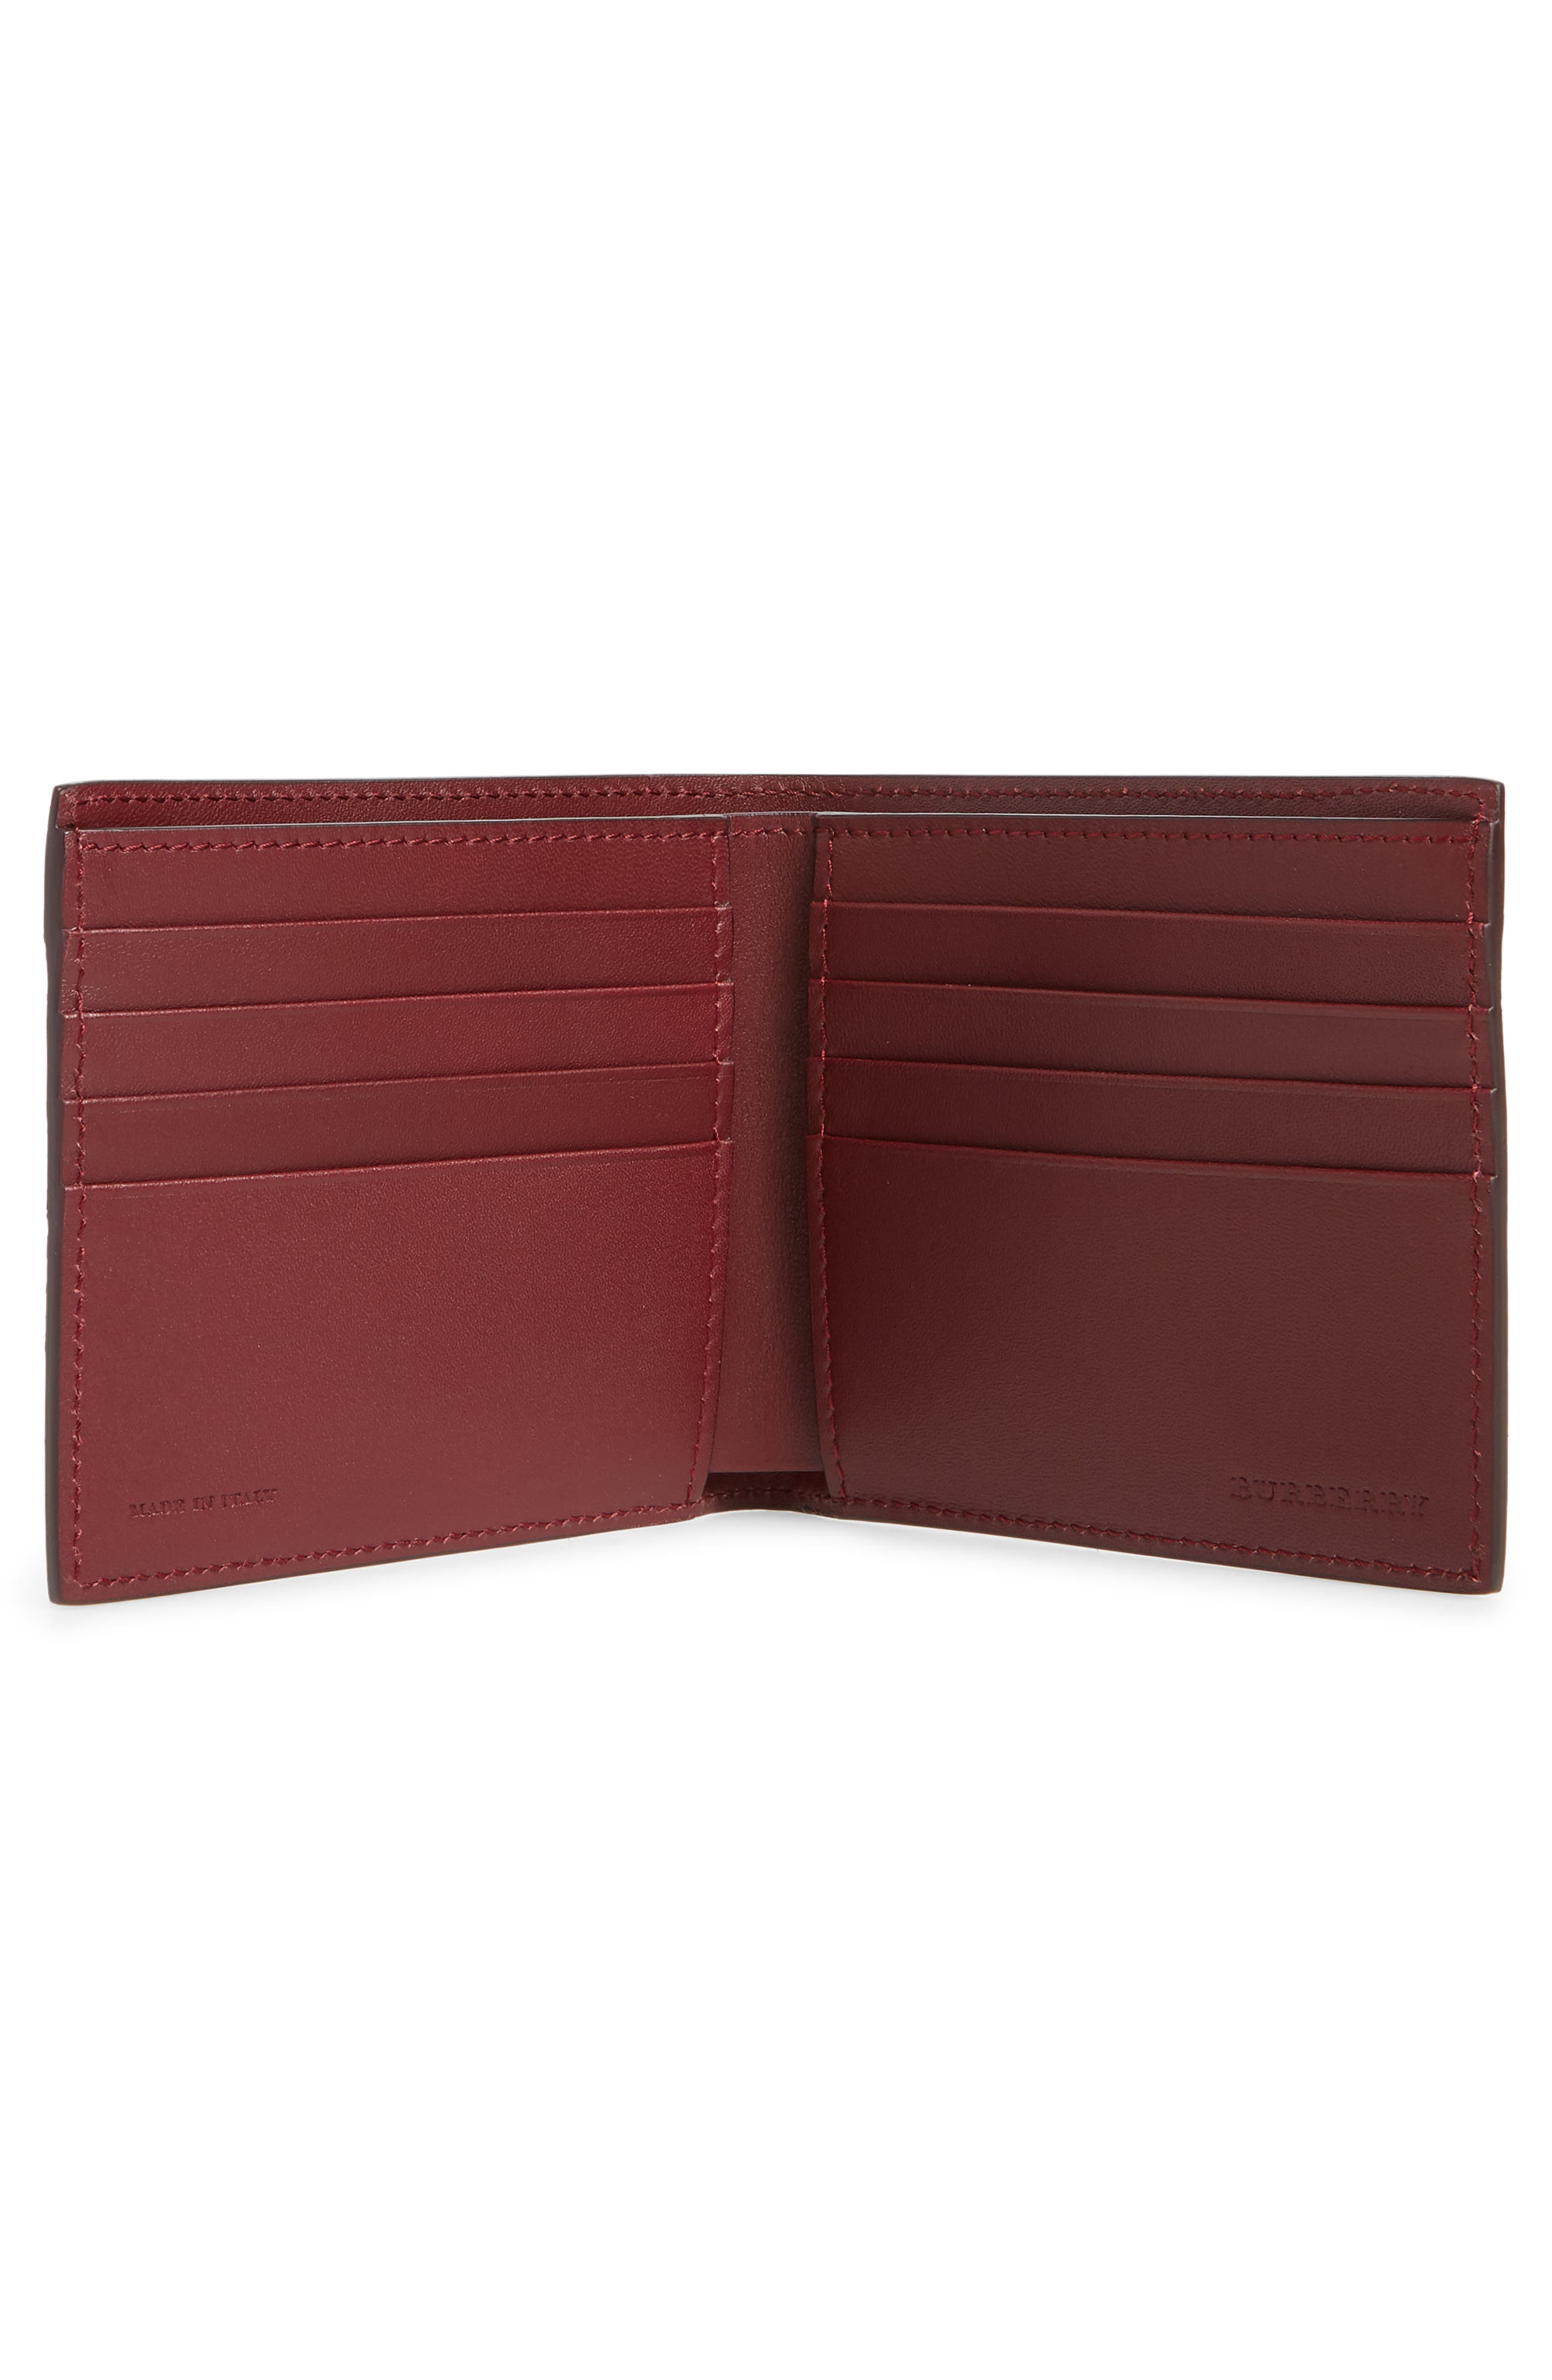 Leather Bifold Wallet,                             Alternate thumbnail 2, color,